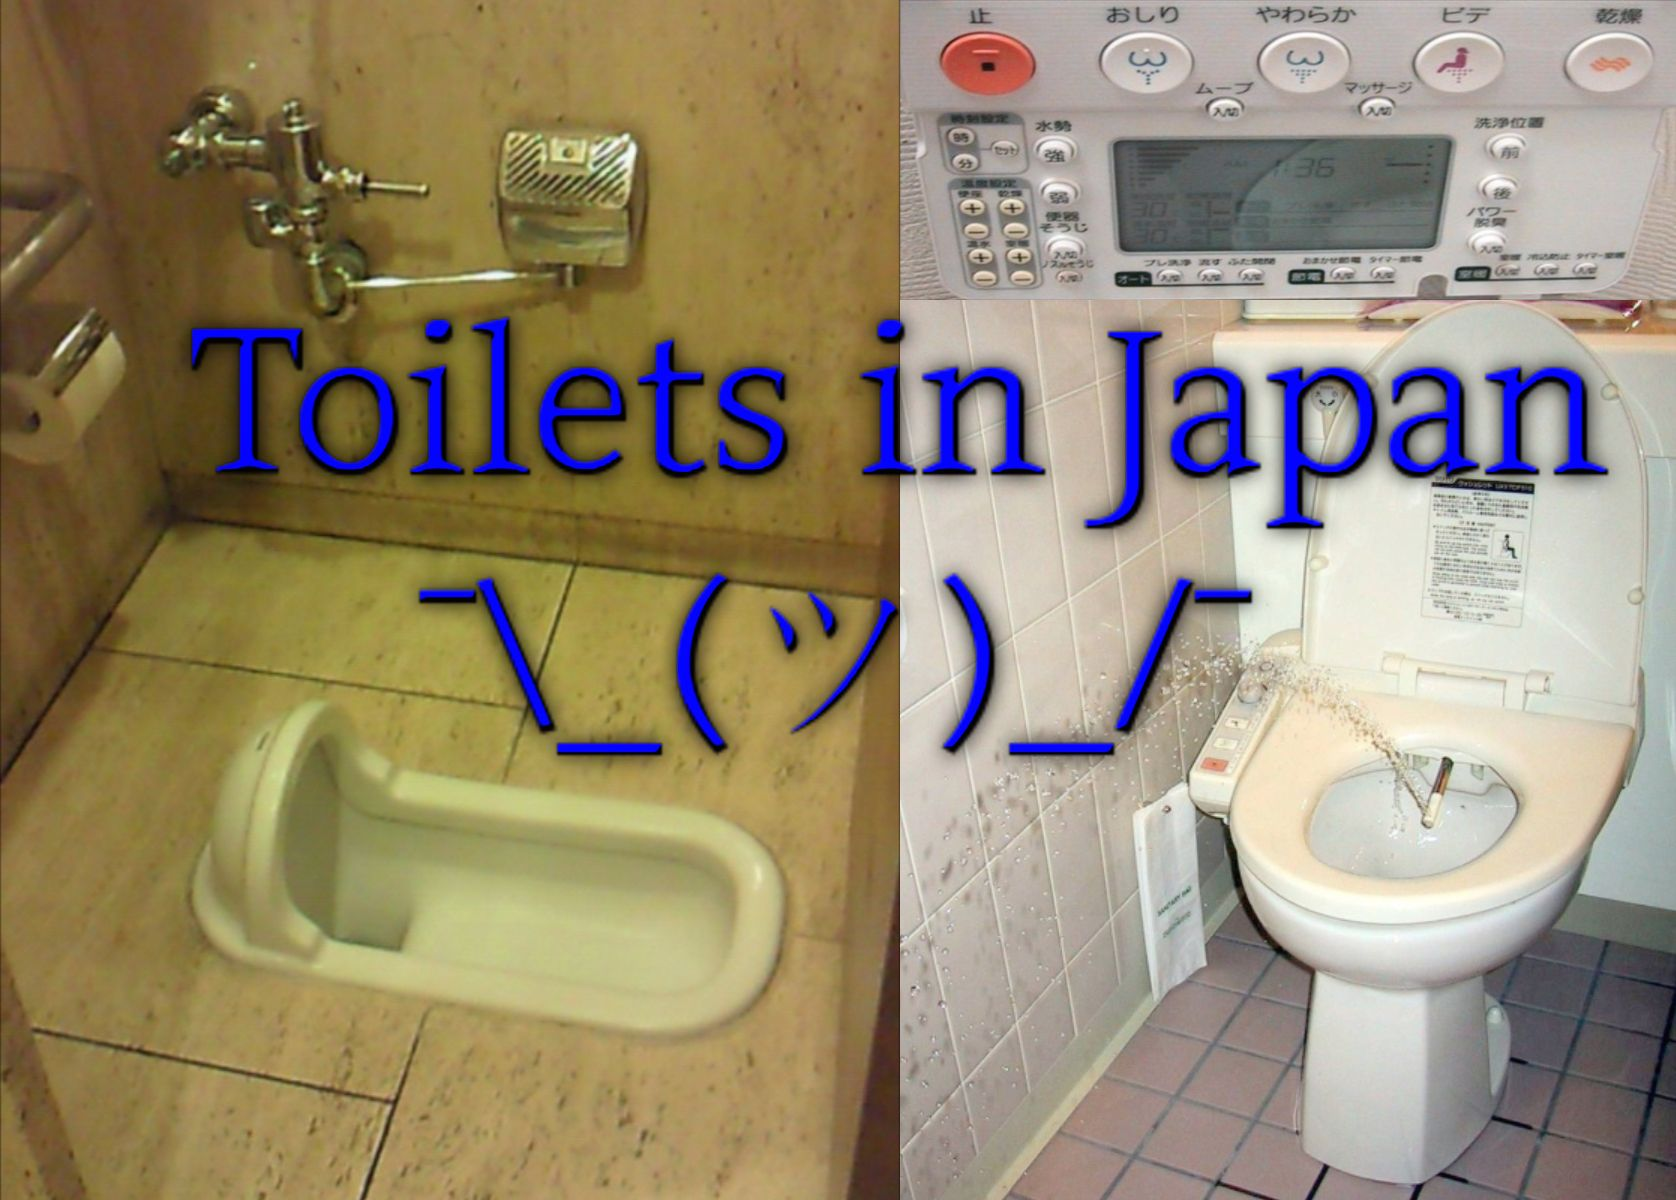 Poll reveals what we already know: Japanese toilets make no sense ...